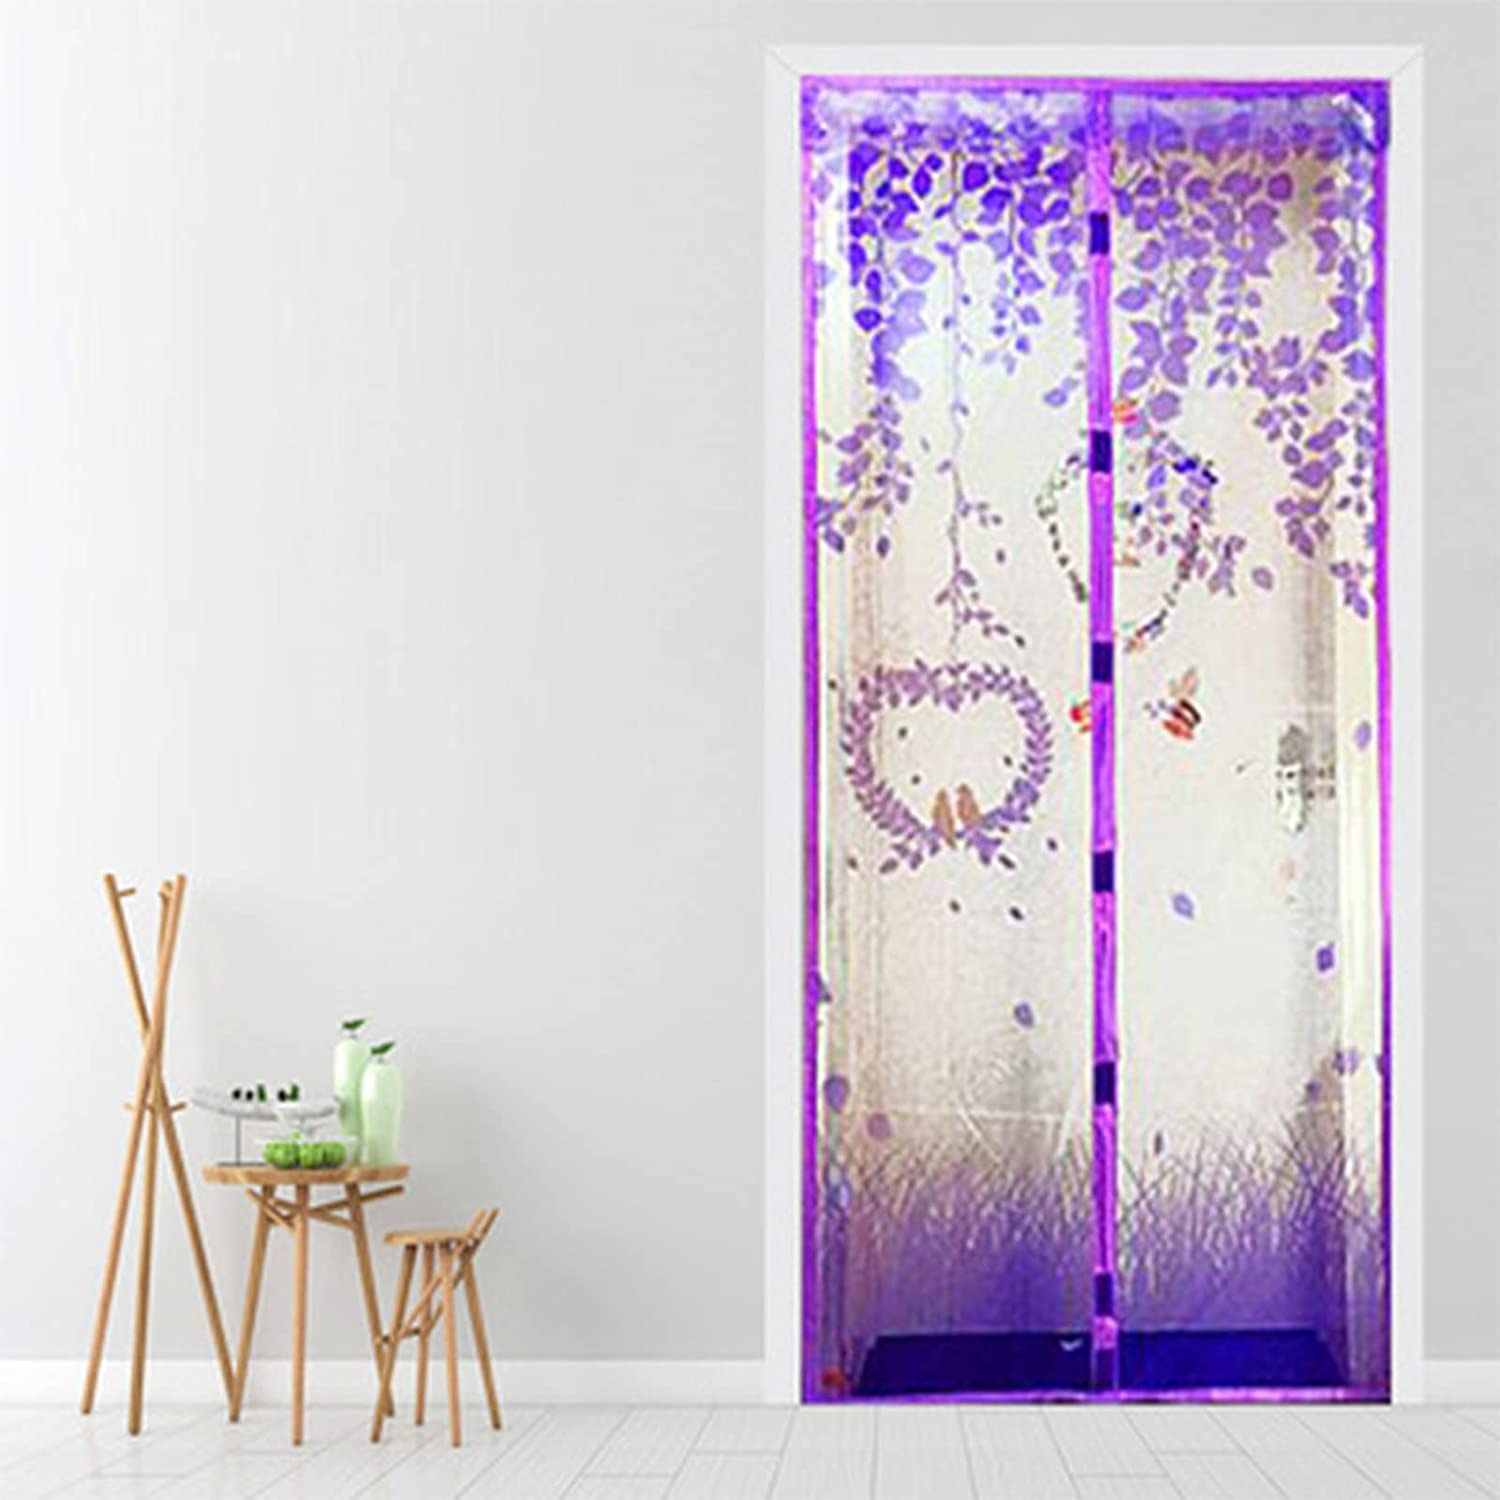 GGXX Screen Great interest Doors with Yourself Attracted Mesh X Curtain - Selling 21 70